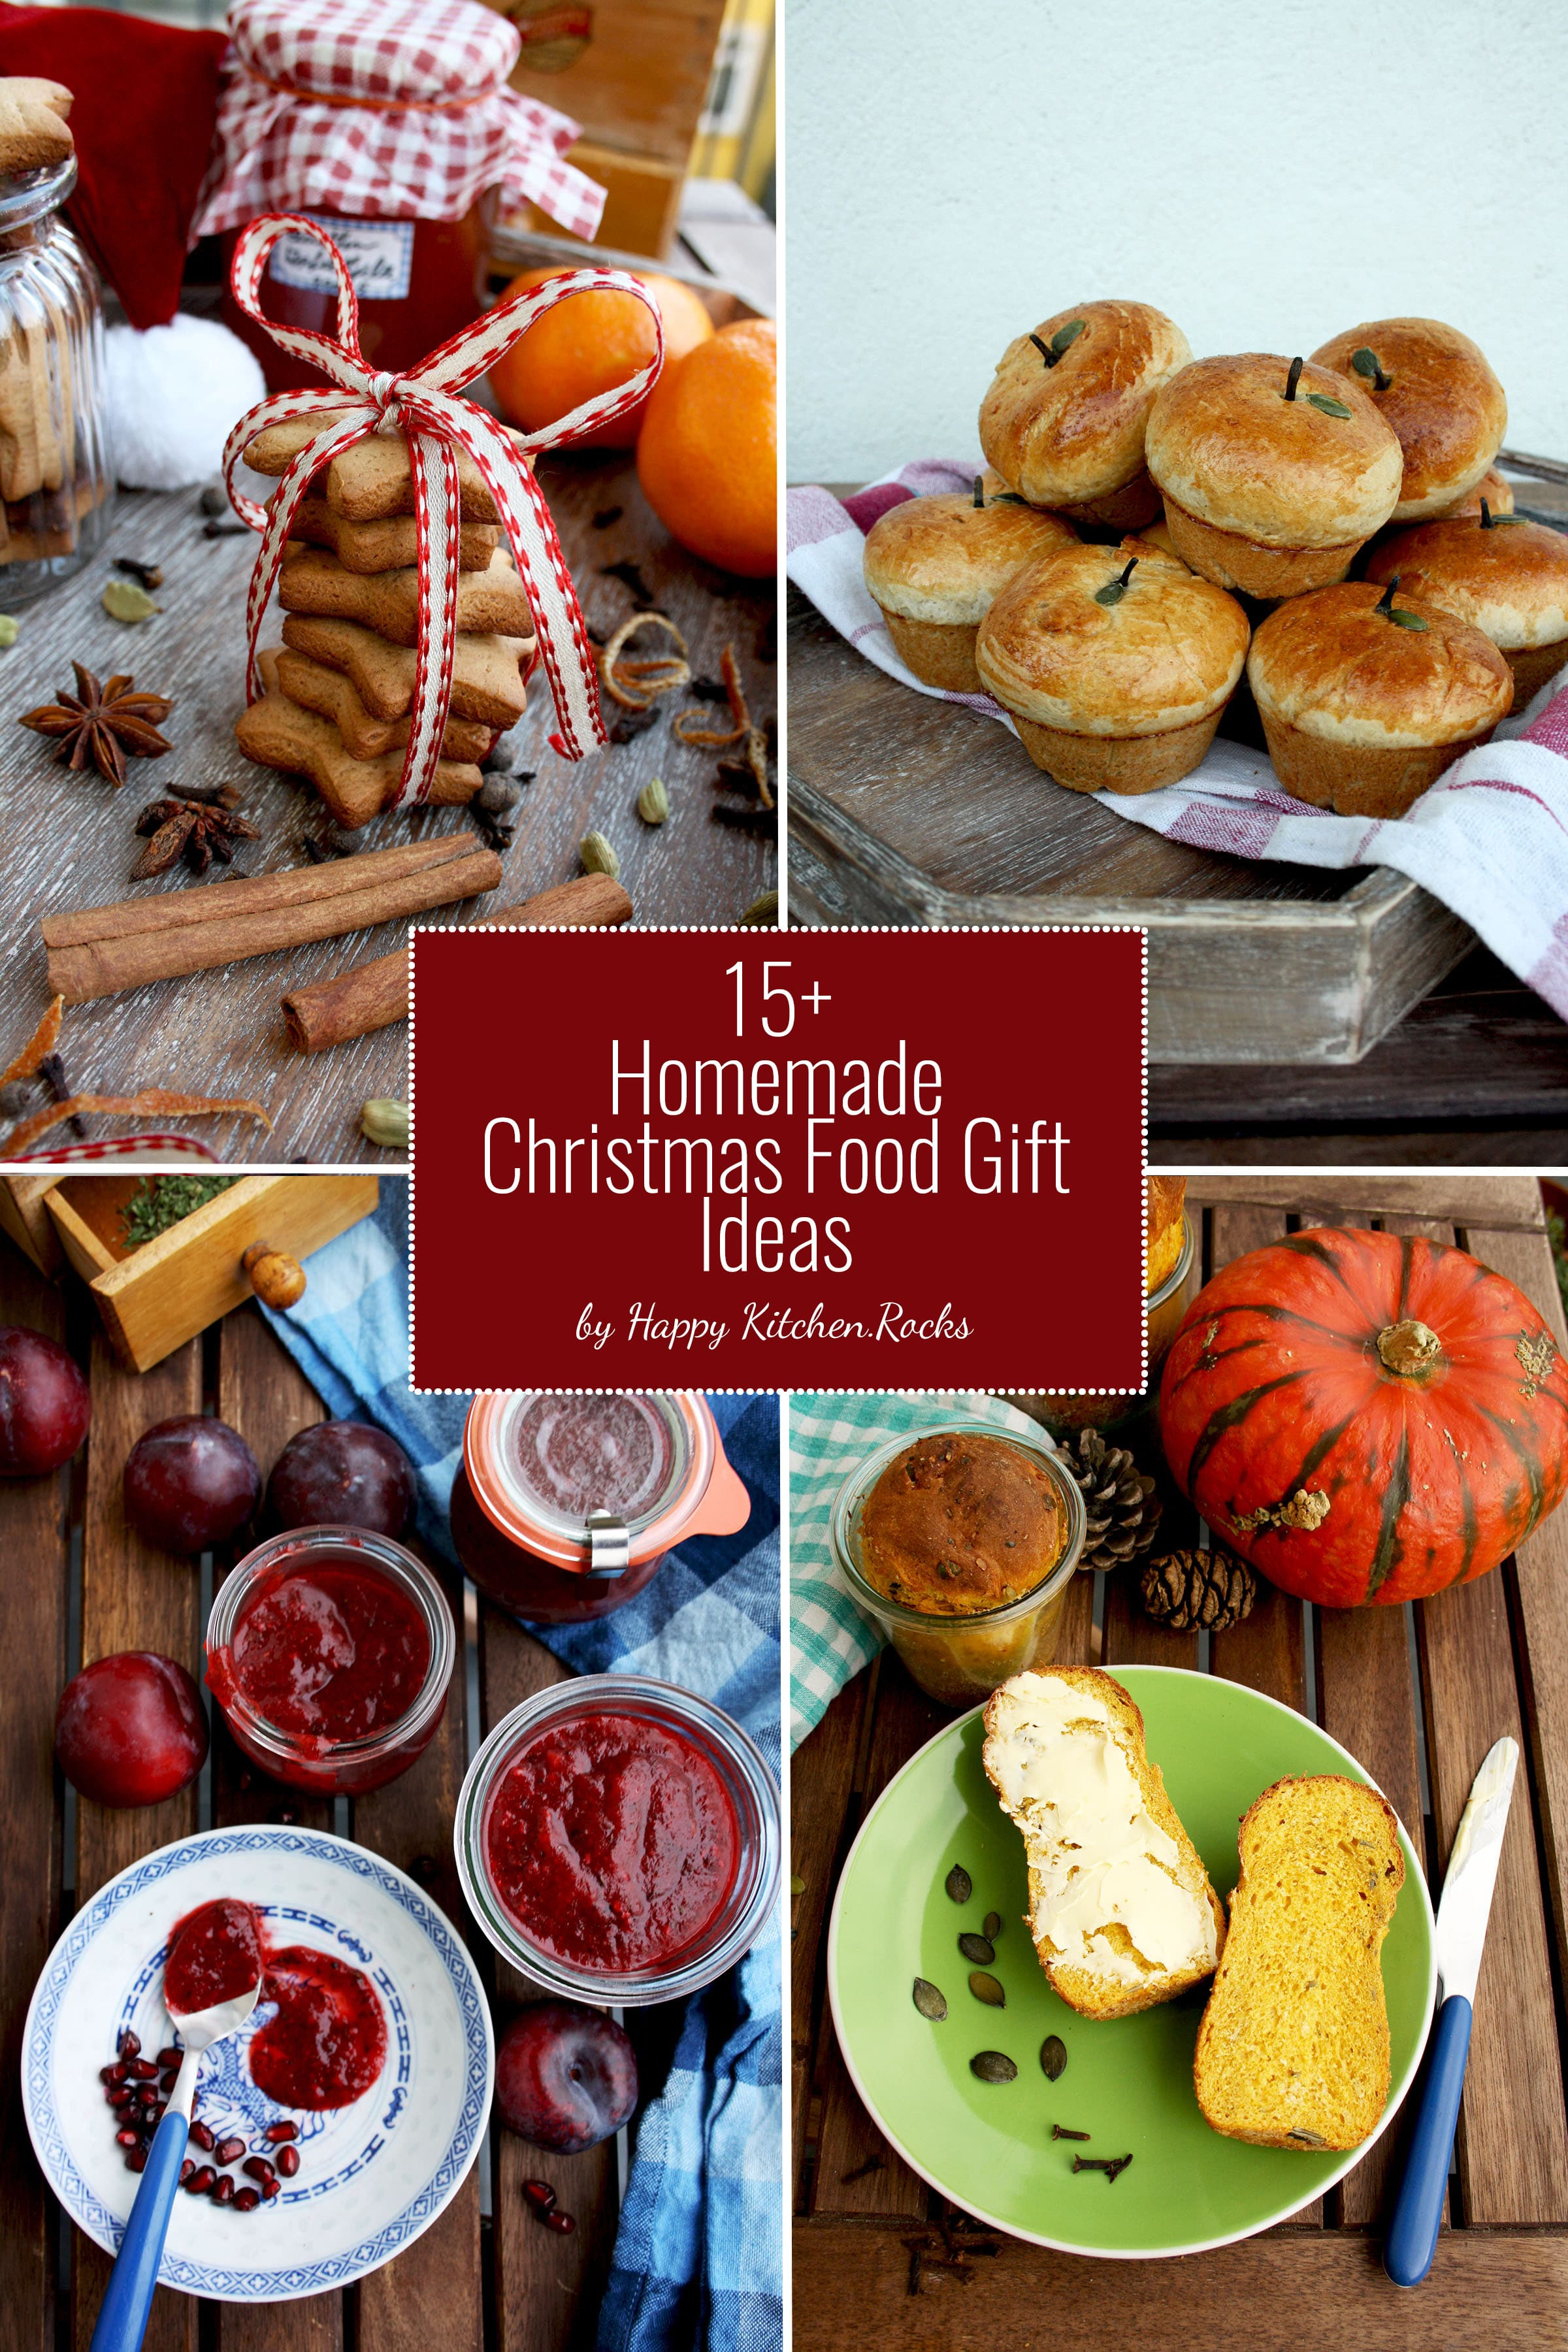 15+ Homemade Christmas Food Gift Ideas - Happy Kitchen.Rocks